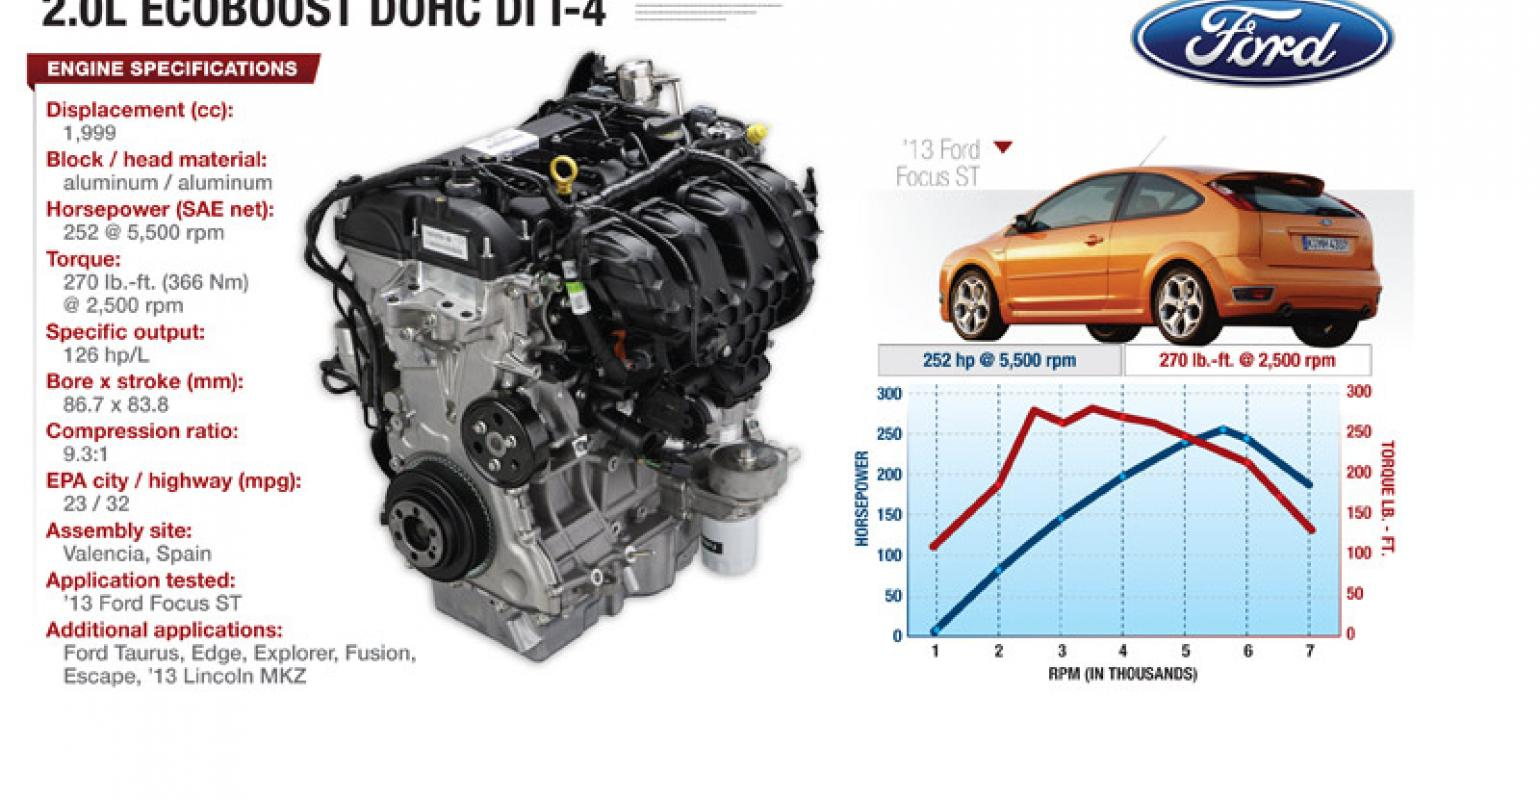 Ford 4 Cyl Ecoboost Powerful Versatile And Efficient Wardsauto Focus 2 3 Engine Diagram Car Tuning